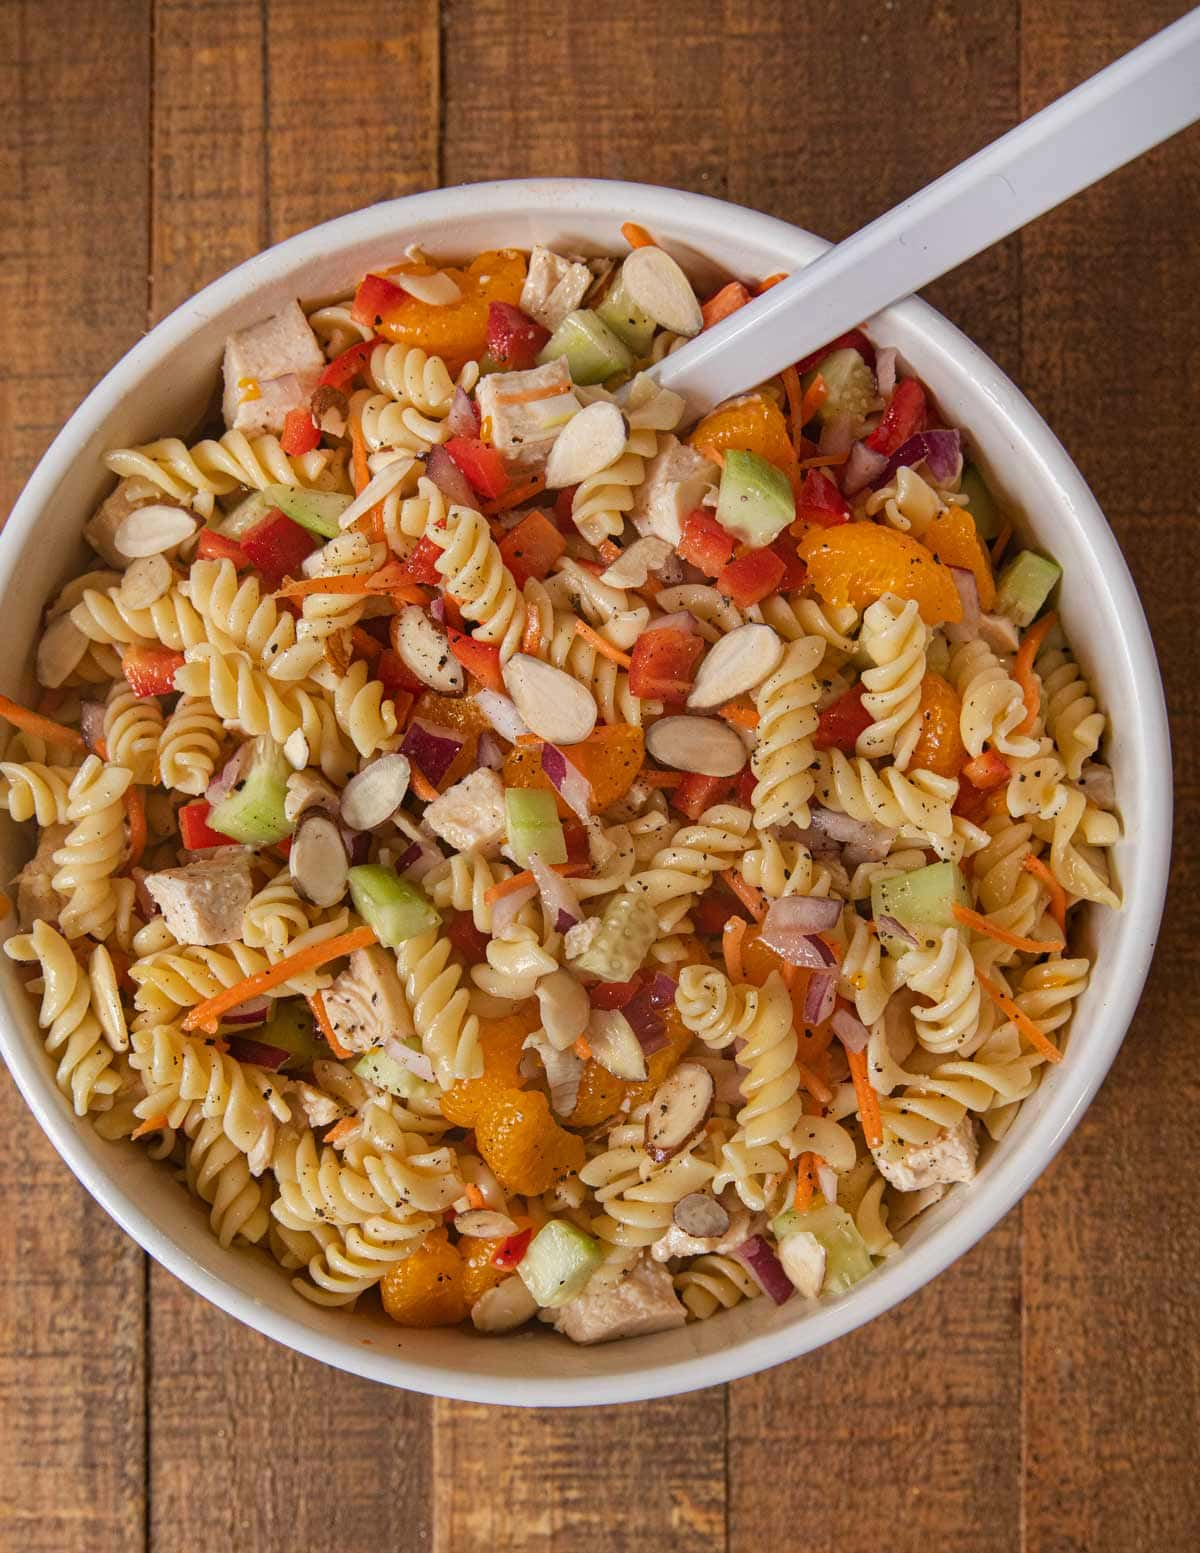 Mandarin Chicken Pasta Salad with ingredients mixed together